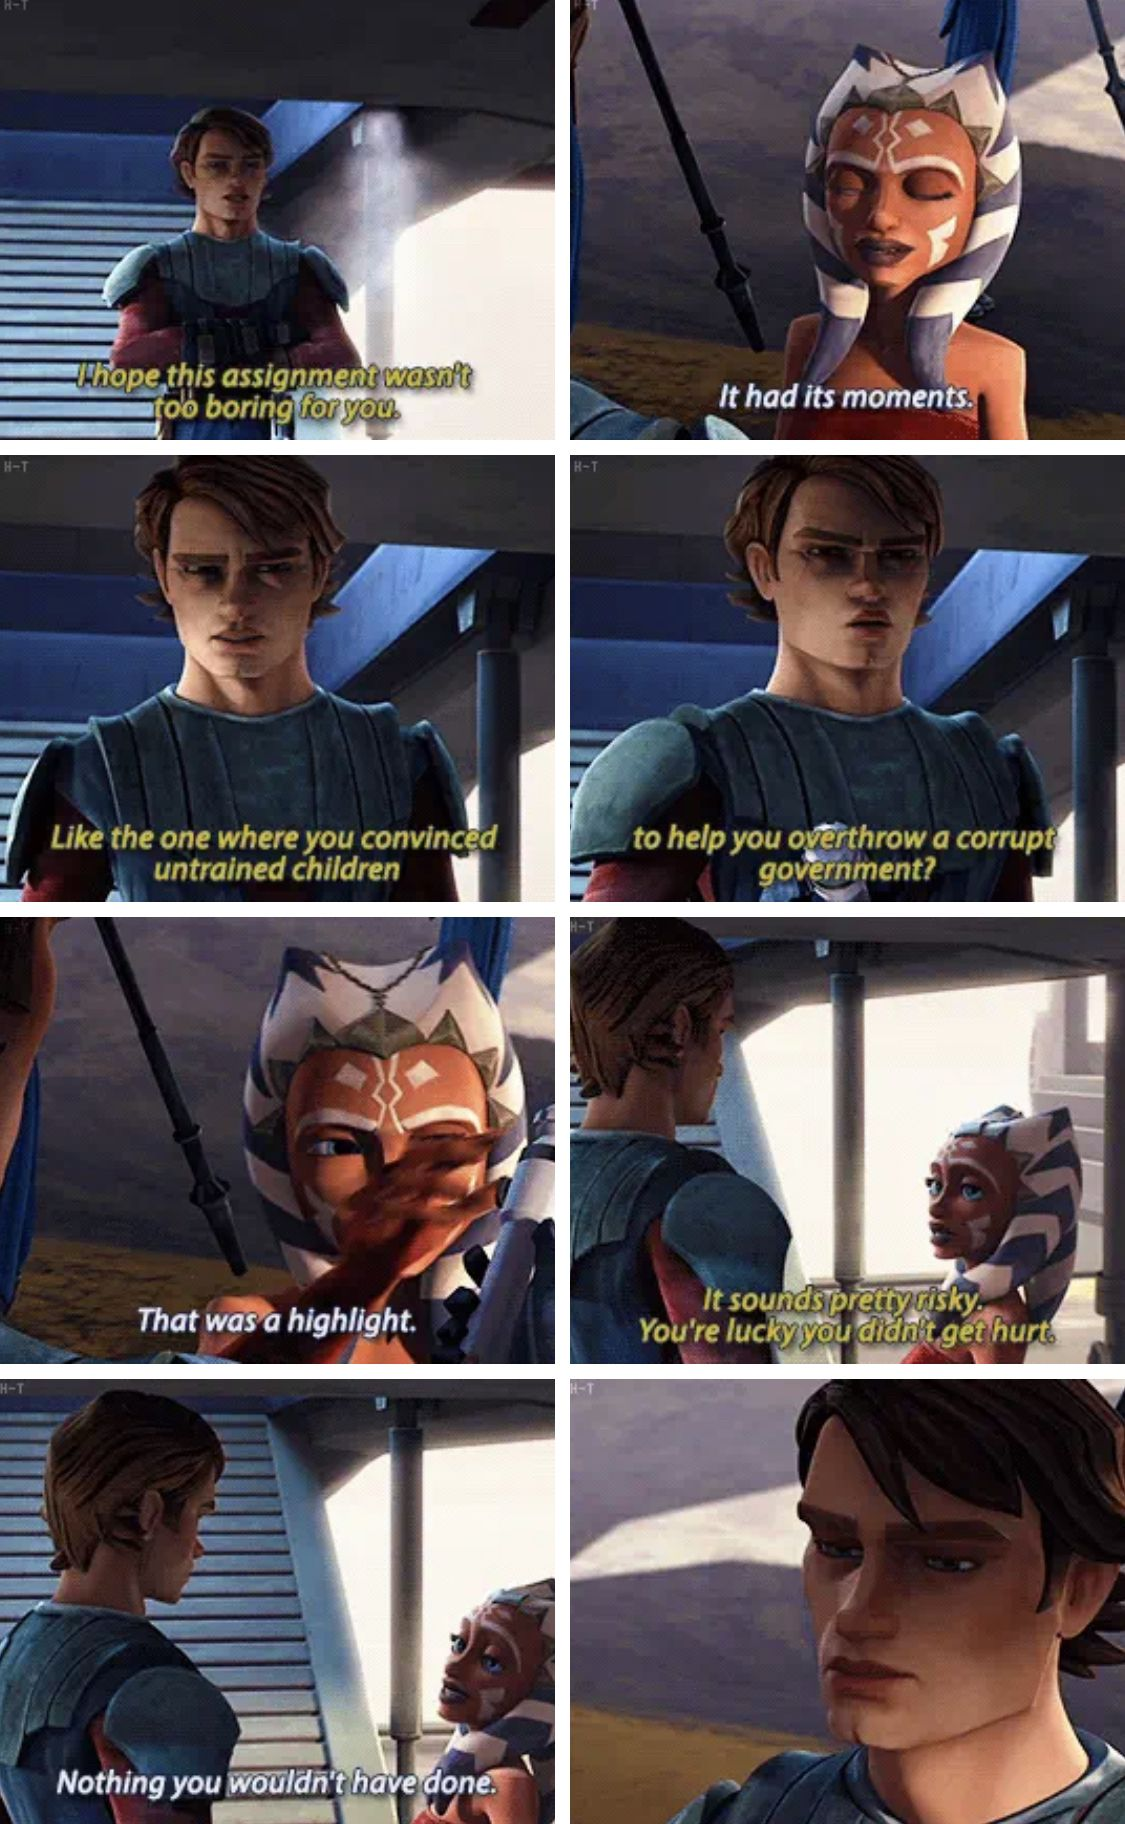 Forgive Me For Who Ever I Copied By Ahsoka Tano On Pic Collage Star Wars Fandom Star Wars Memes Ultimate Star Wars